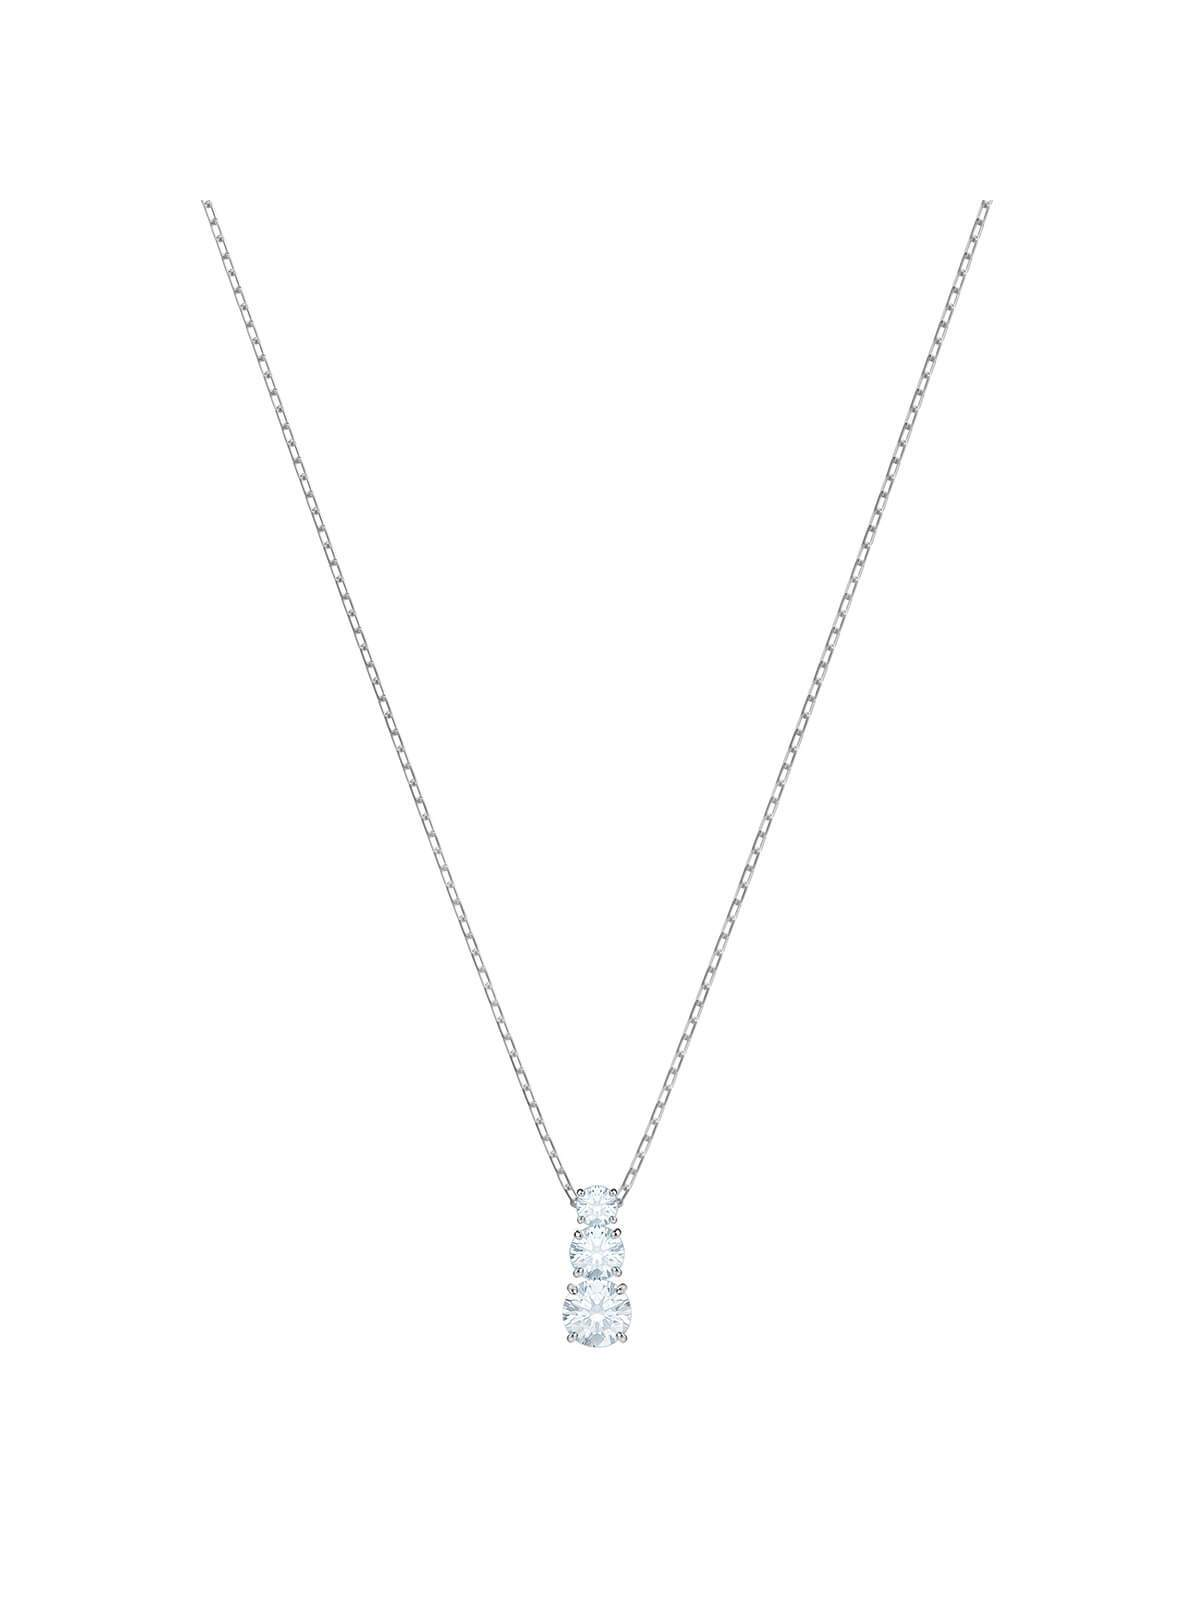 Swarovski Attract Trilogy Rhodium Plated and Clear Crystal Pendant 5414970